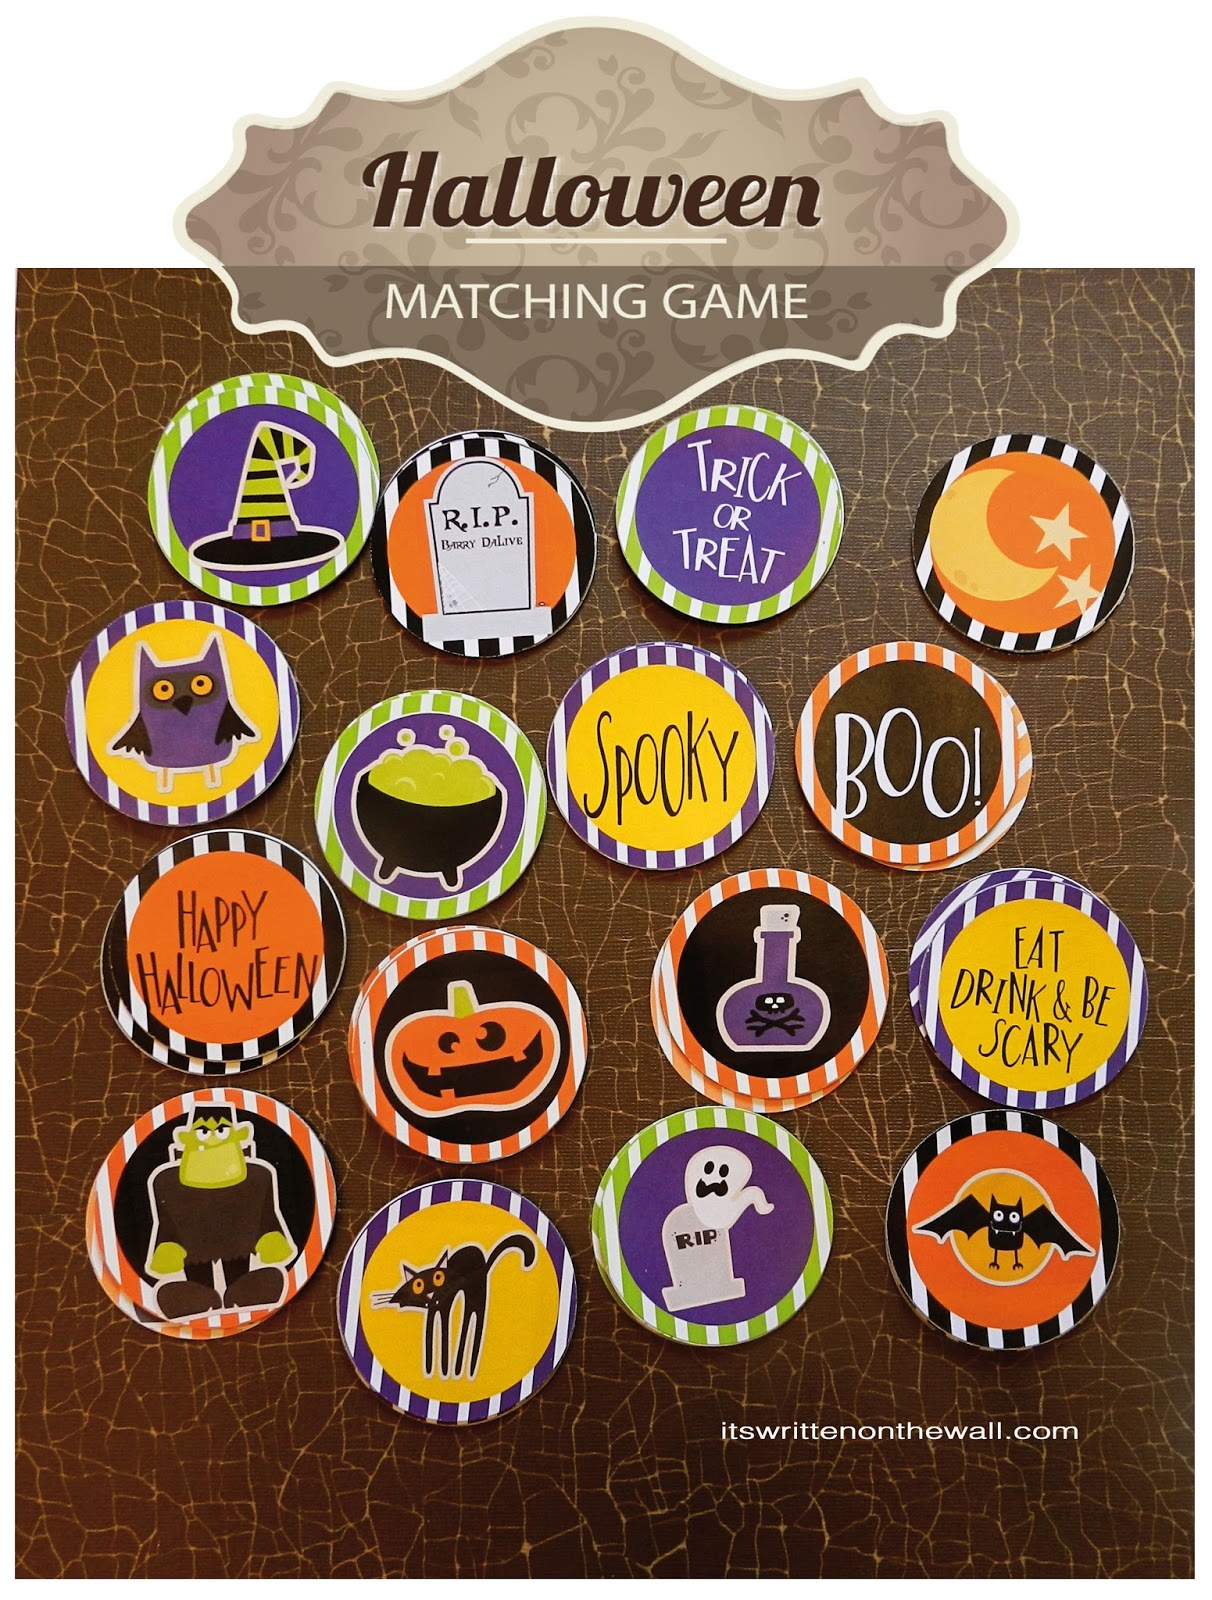 33 fun halloween games treats and ideas for your halloween party - Game Ideas For Halloween Party